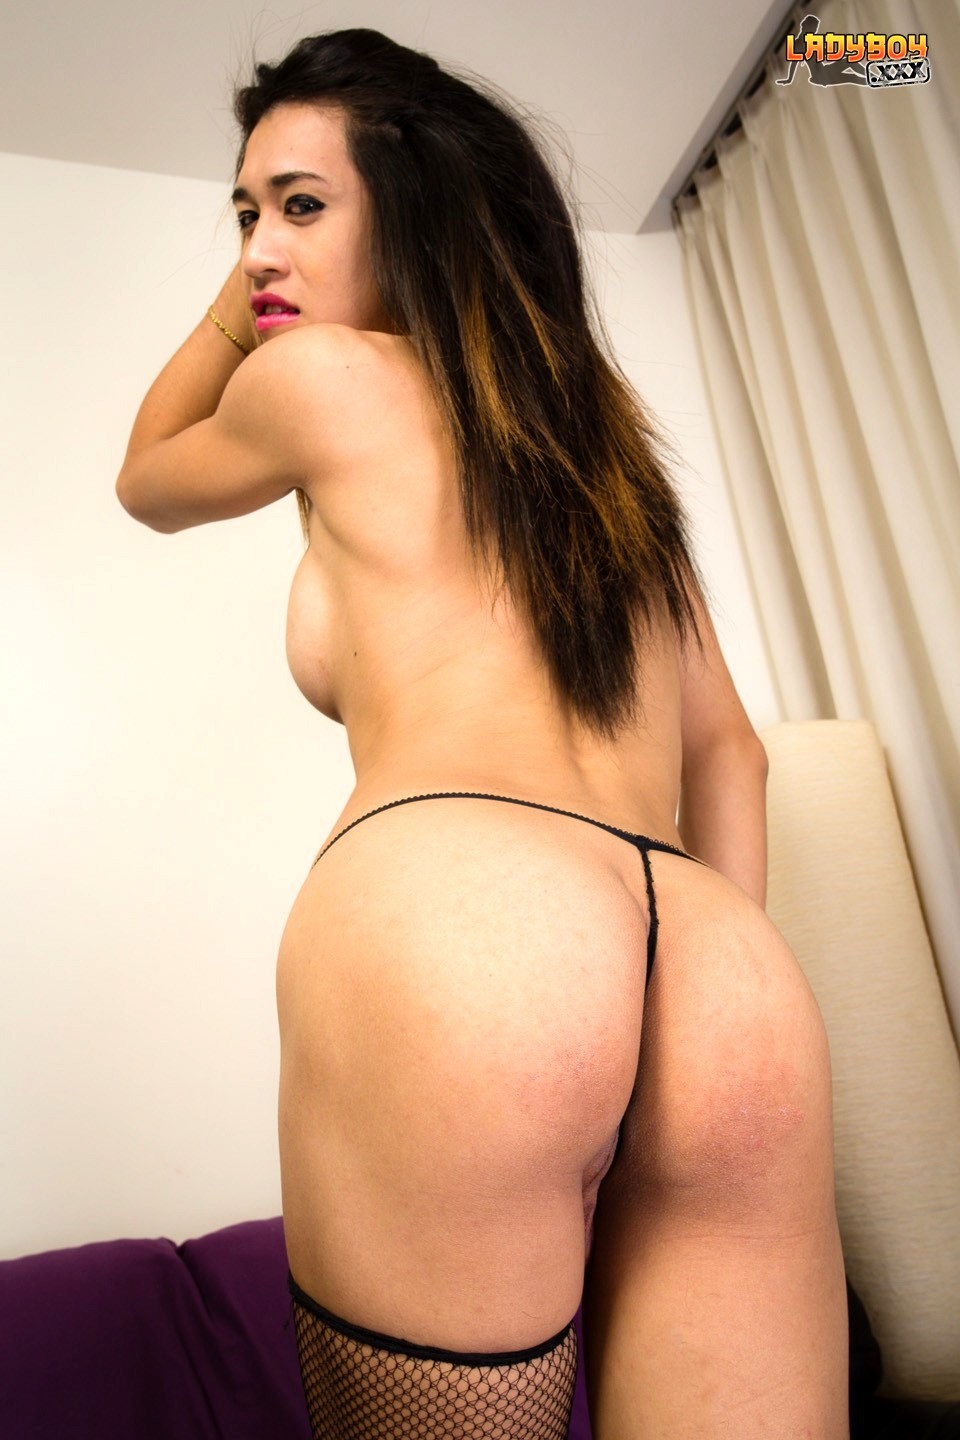 Wise Is A Funny 25 Year Old Transexual From Bangkok. She Smiles